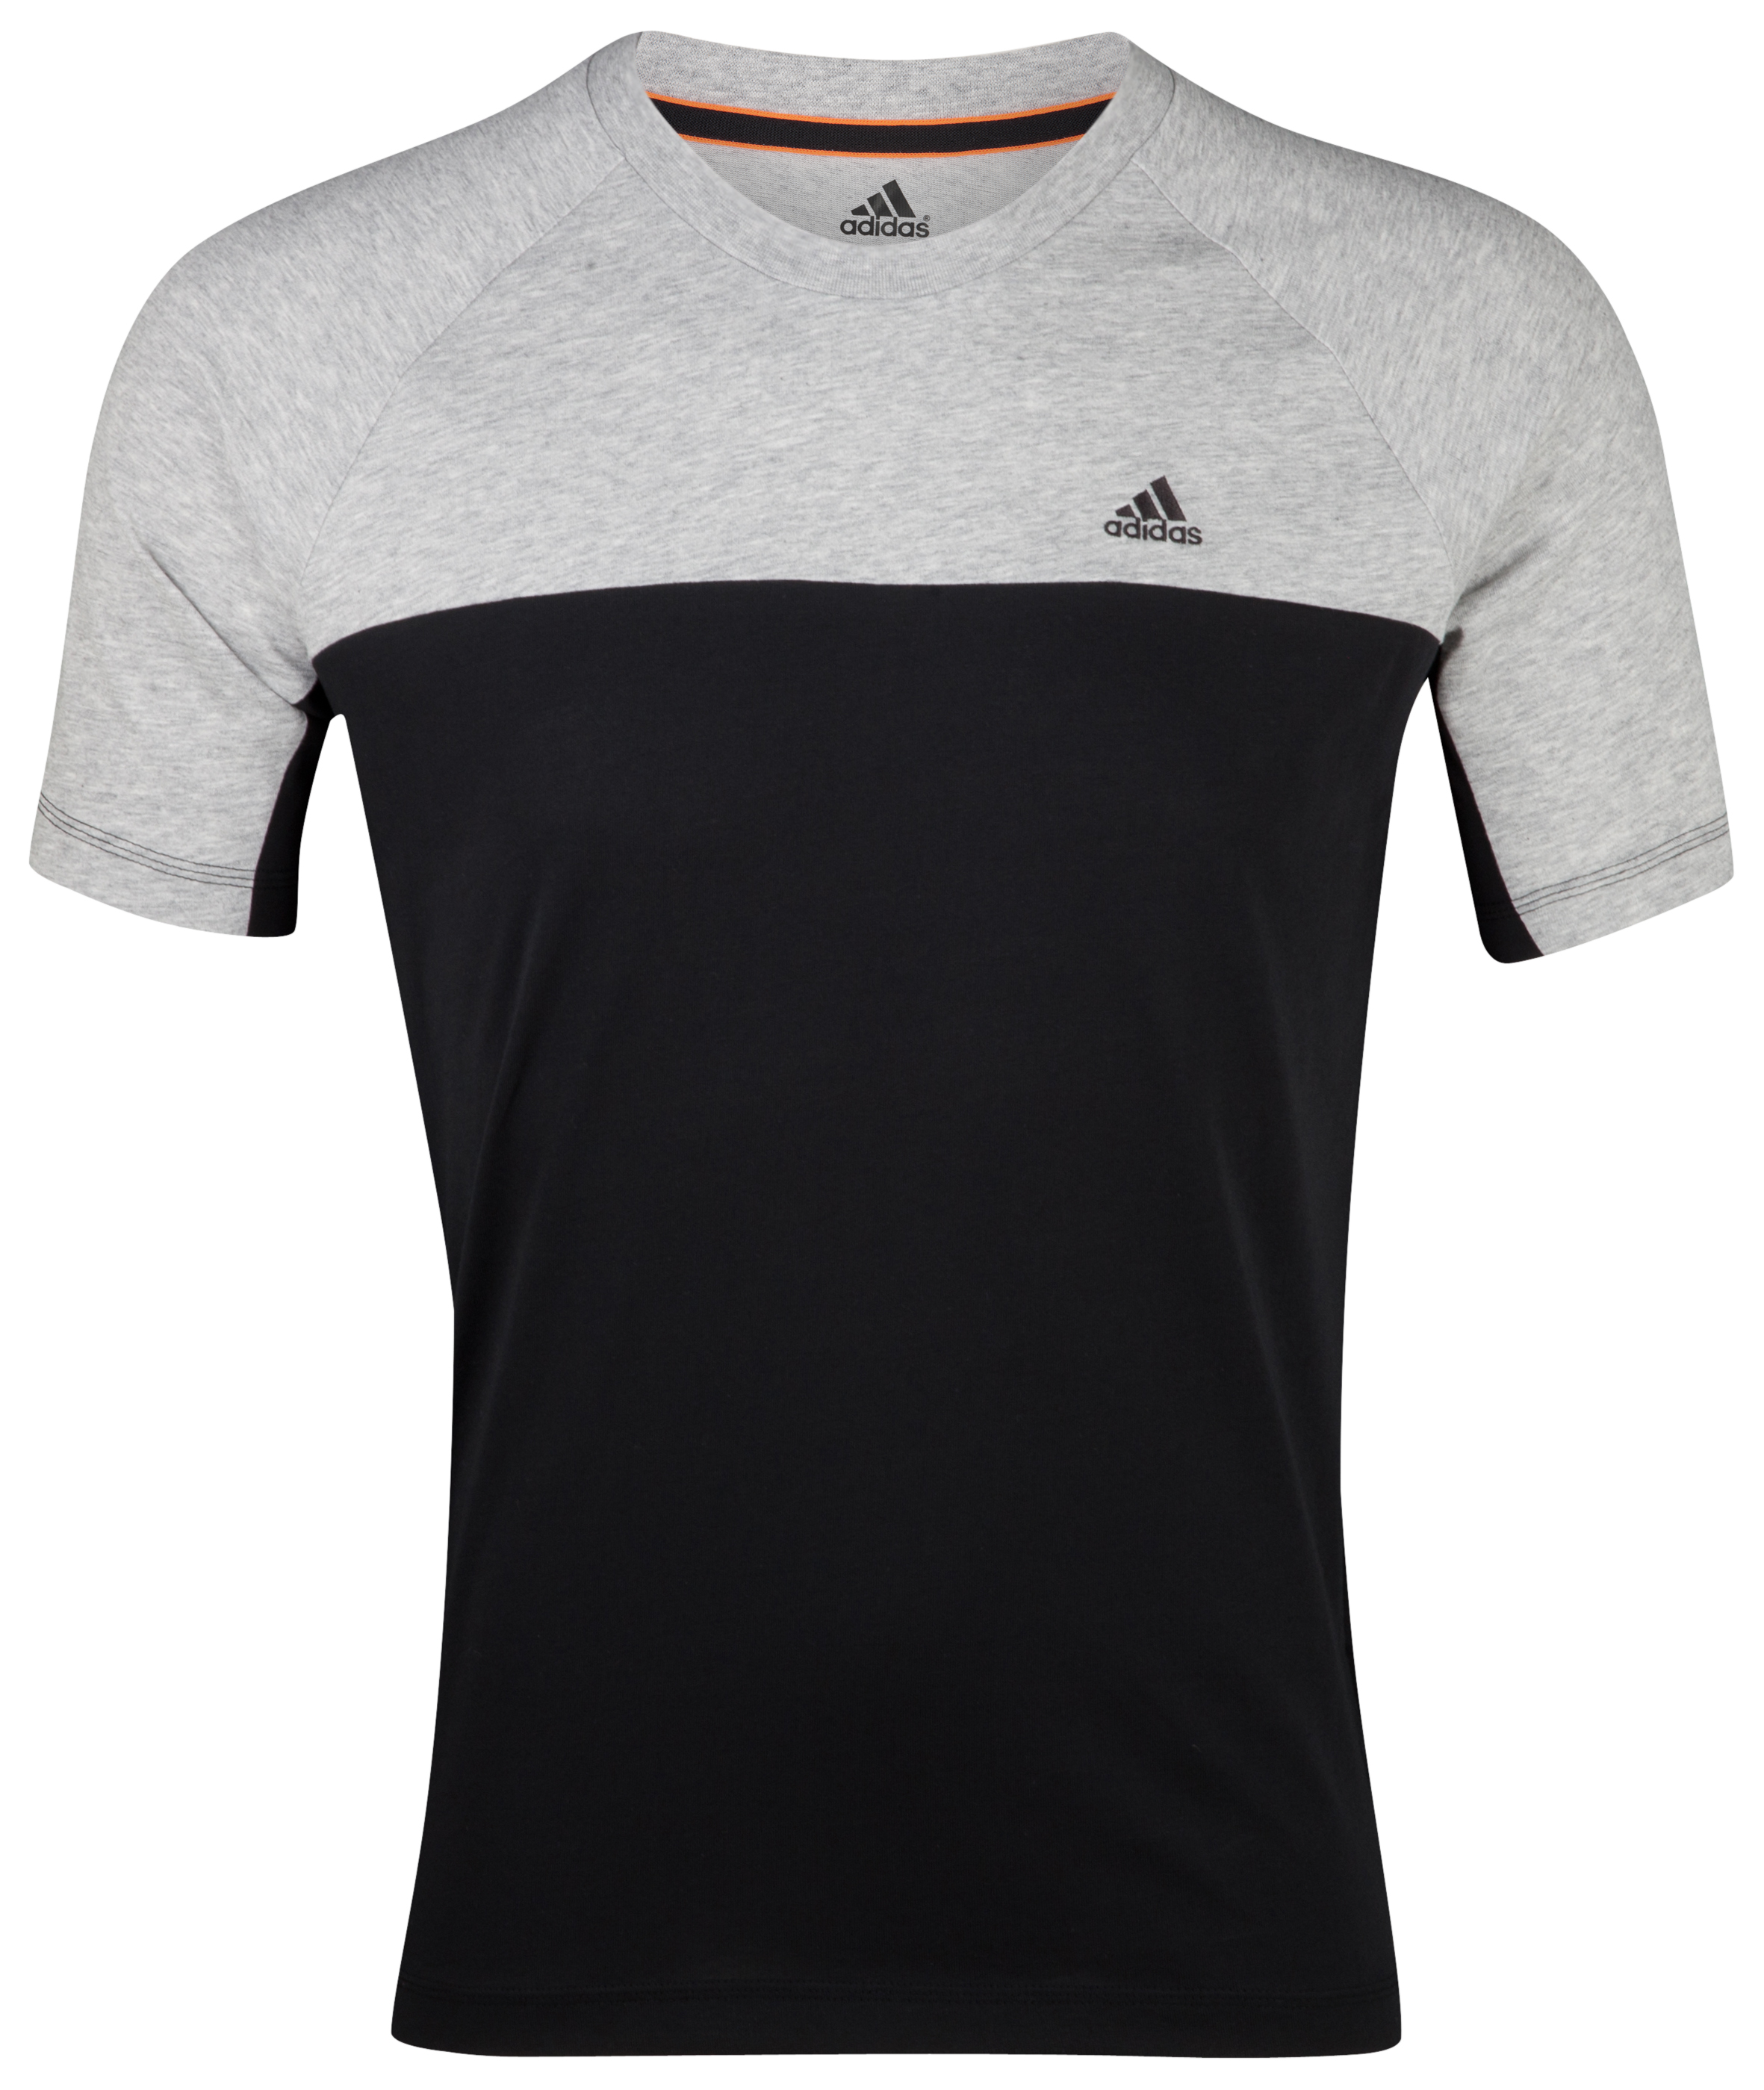 Adidas Essentials Crew T-Shirt - Black/Medium Grey Heather